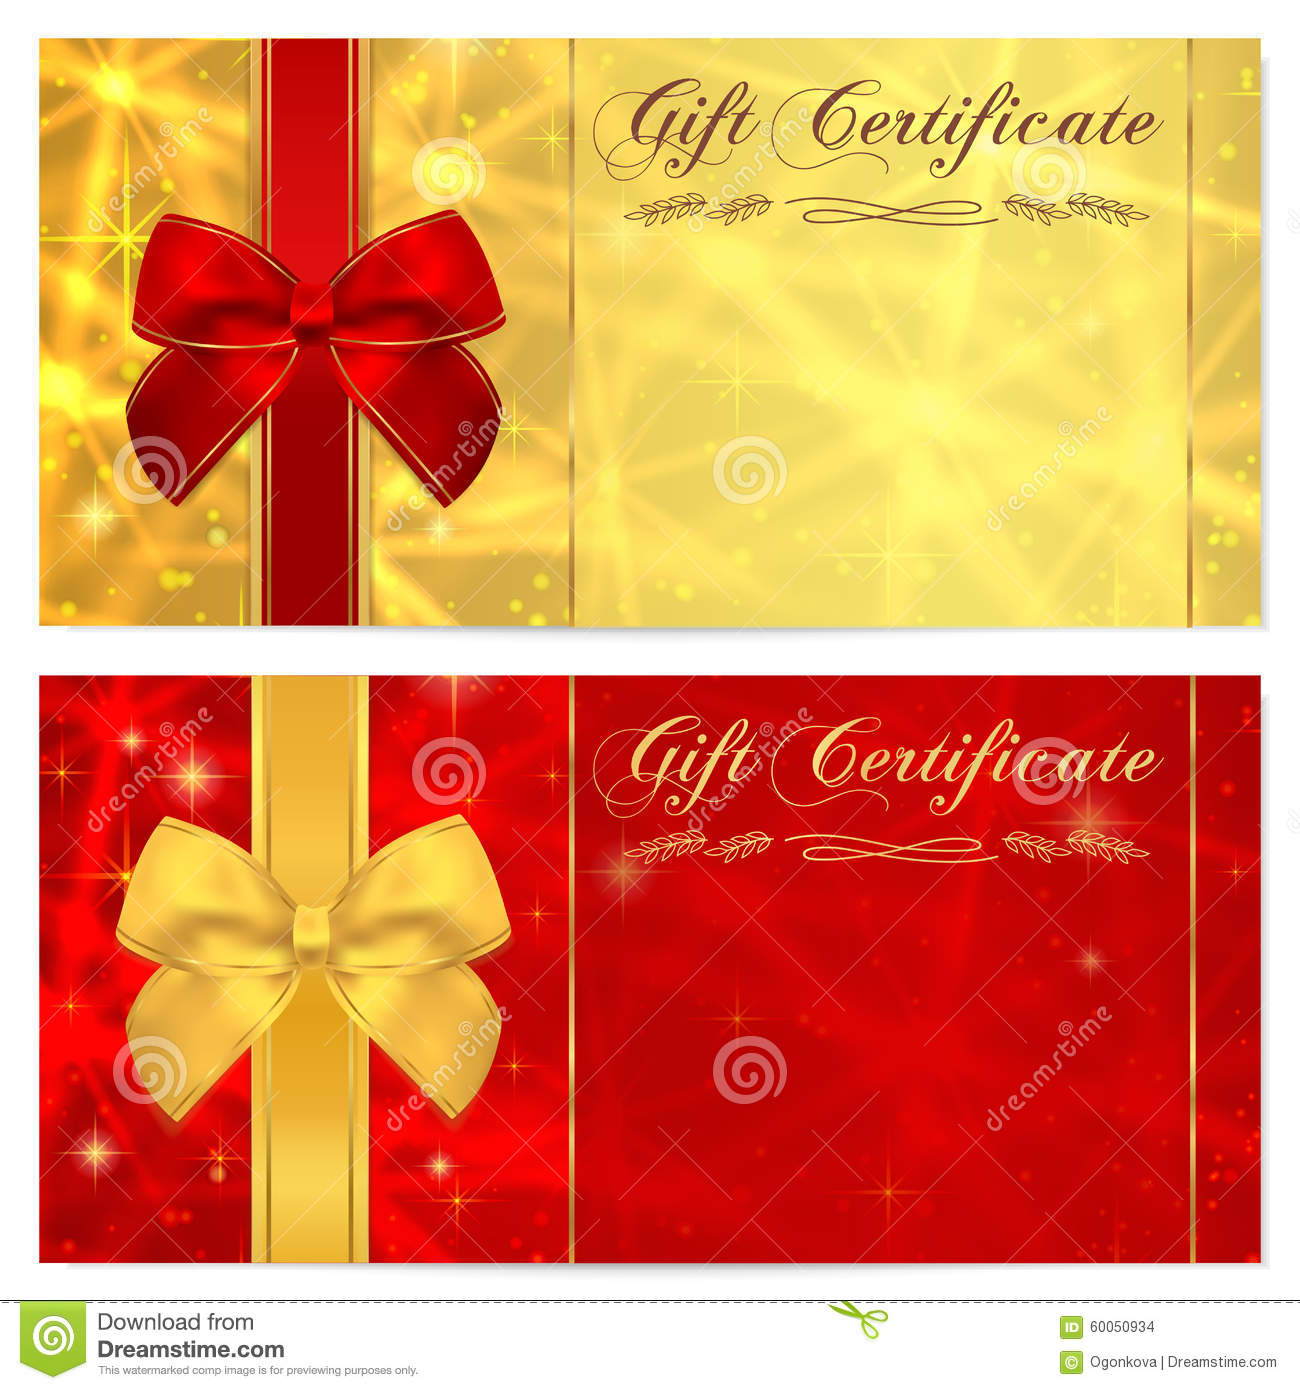 holiday gift certificate template gift certificate voucher coupon ...